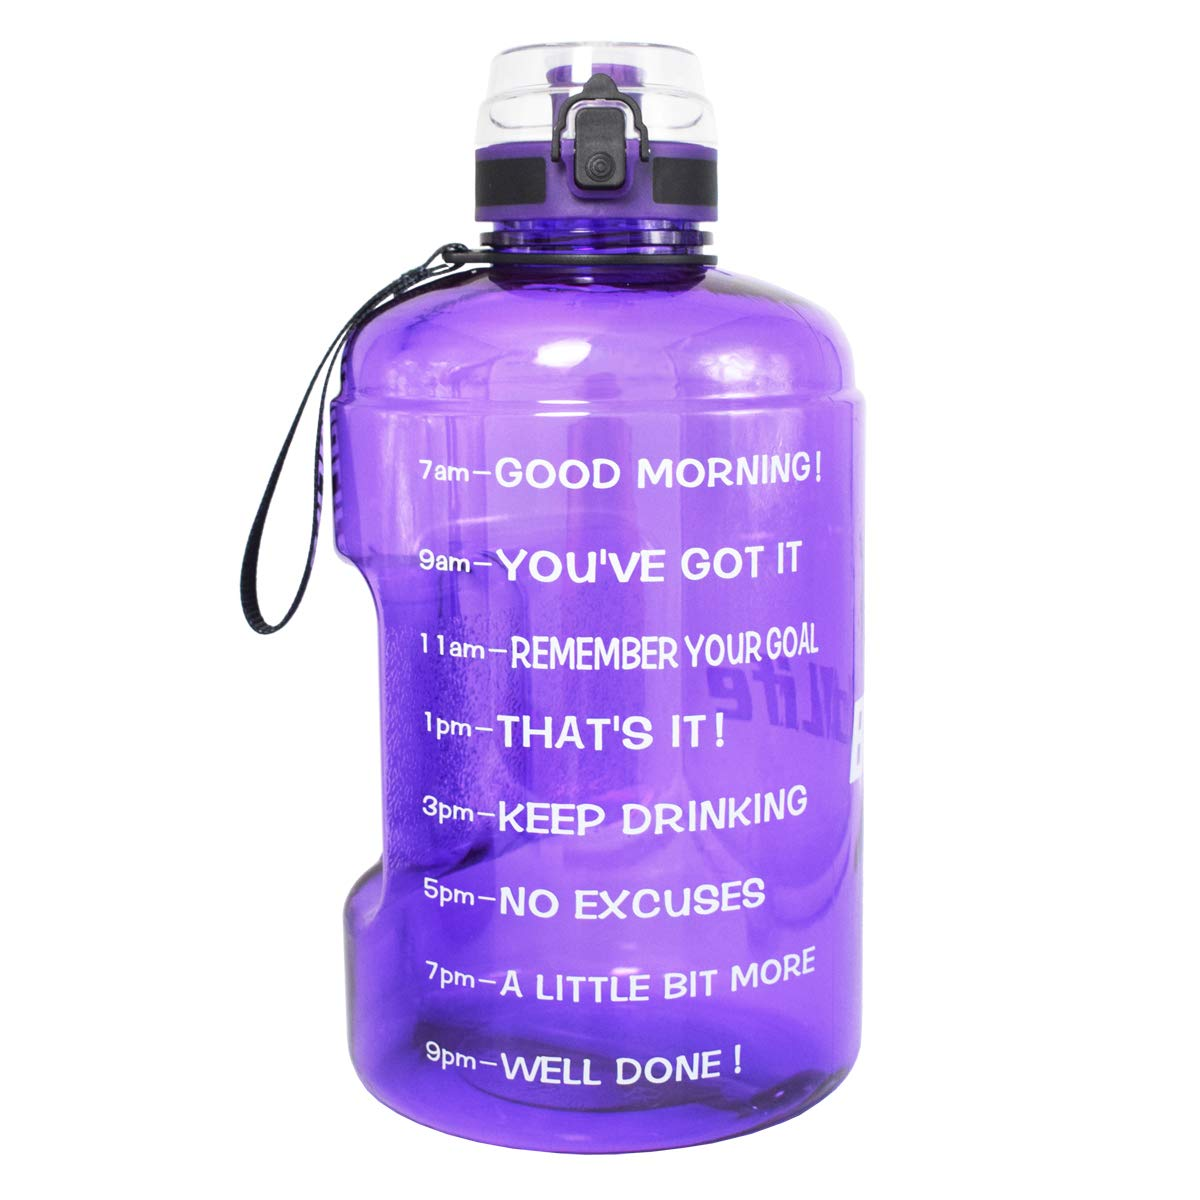 QuiFit Gallon Water Bottle with Motivational Time Marker,Wide Mouth Fast Flow Locking Flip-Flop Lid,BPA Free,128,73,43 oz,Large Capacity Outdoors Sport Water Jug